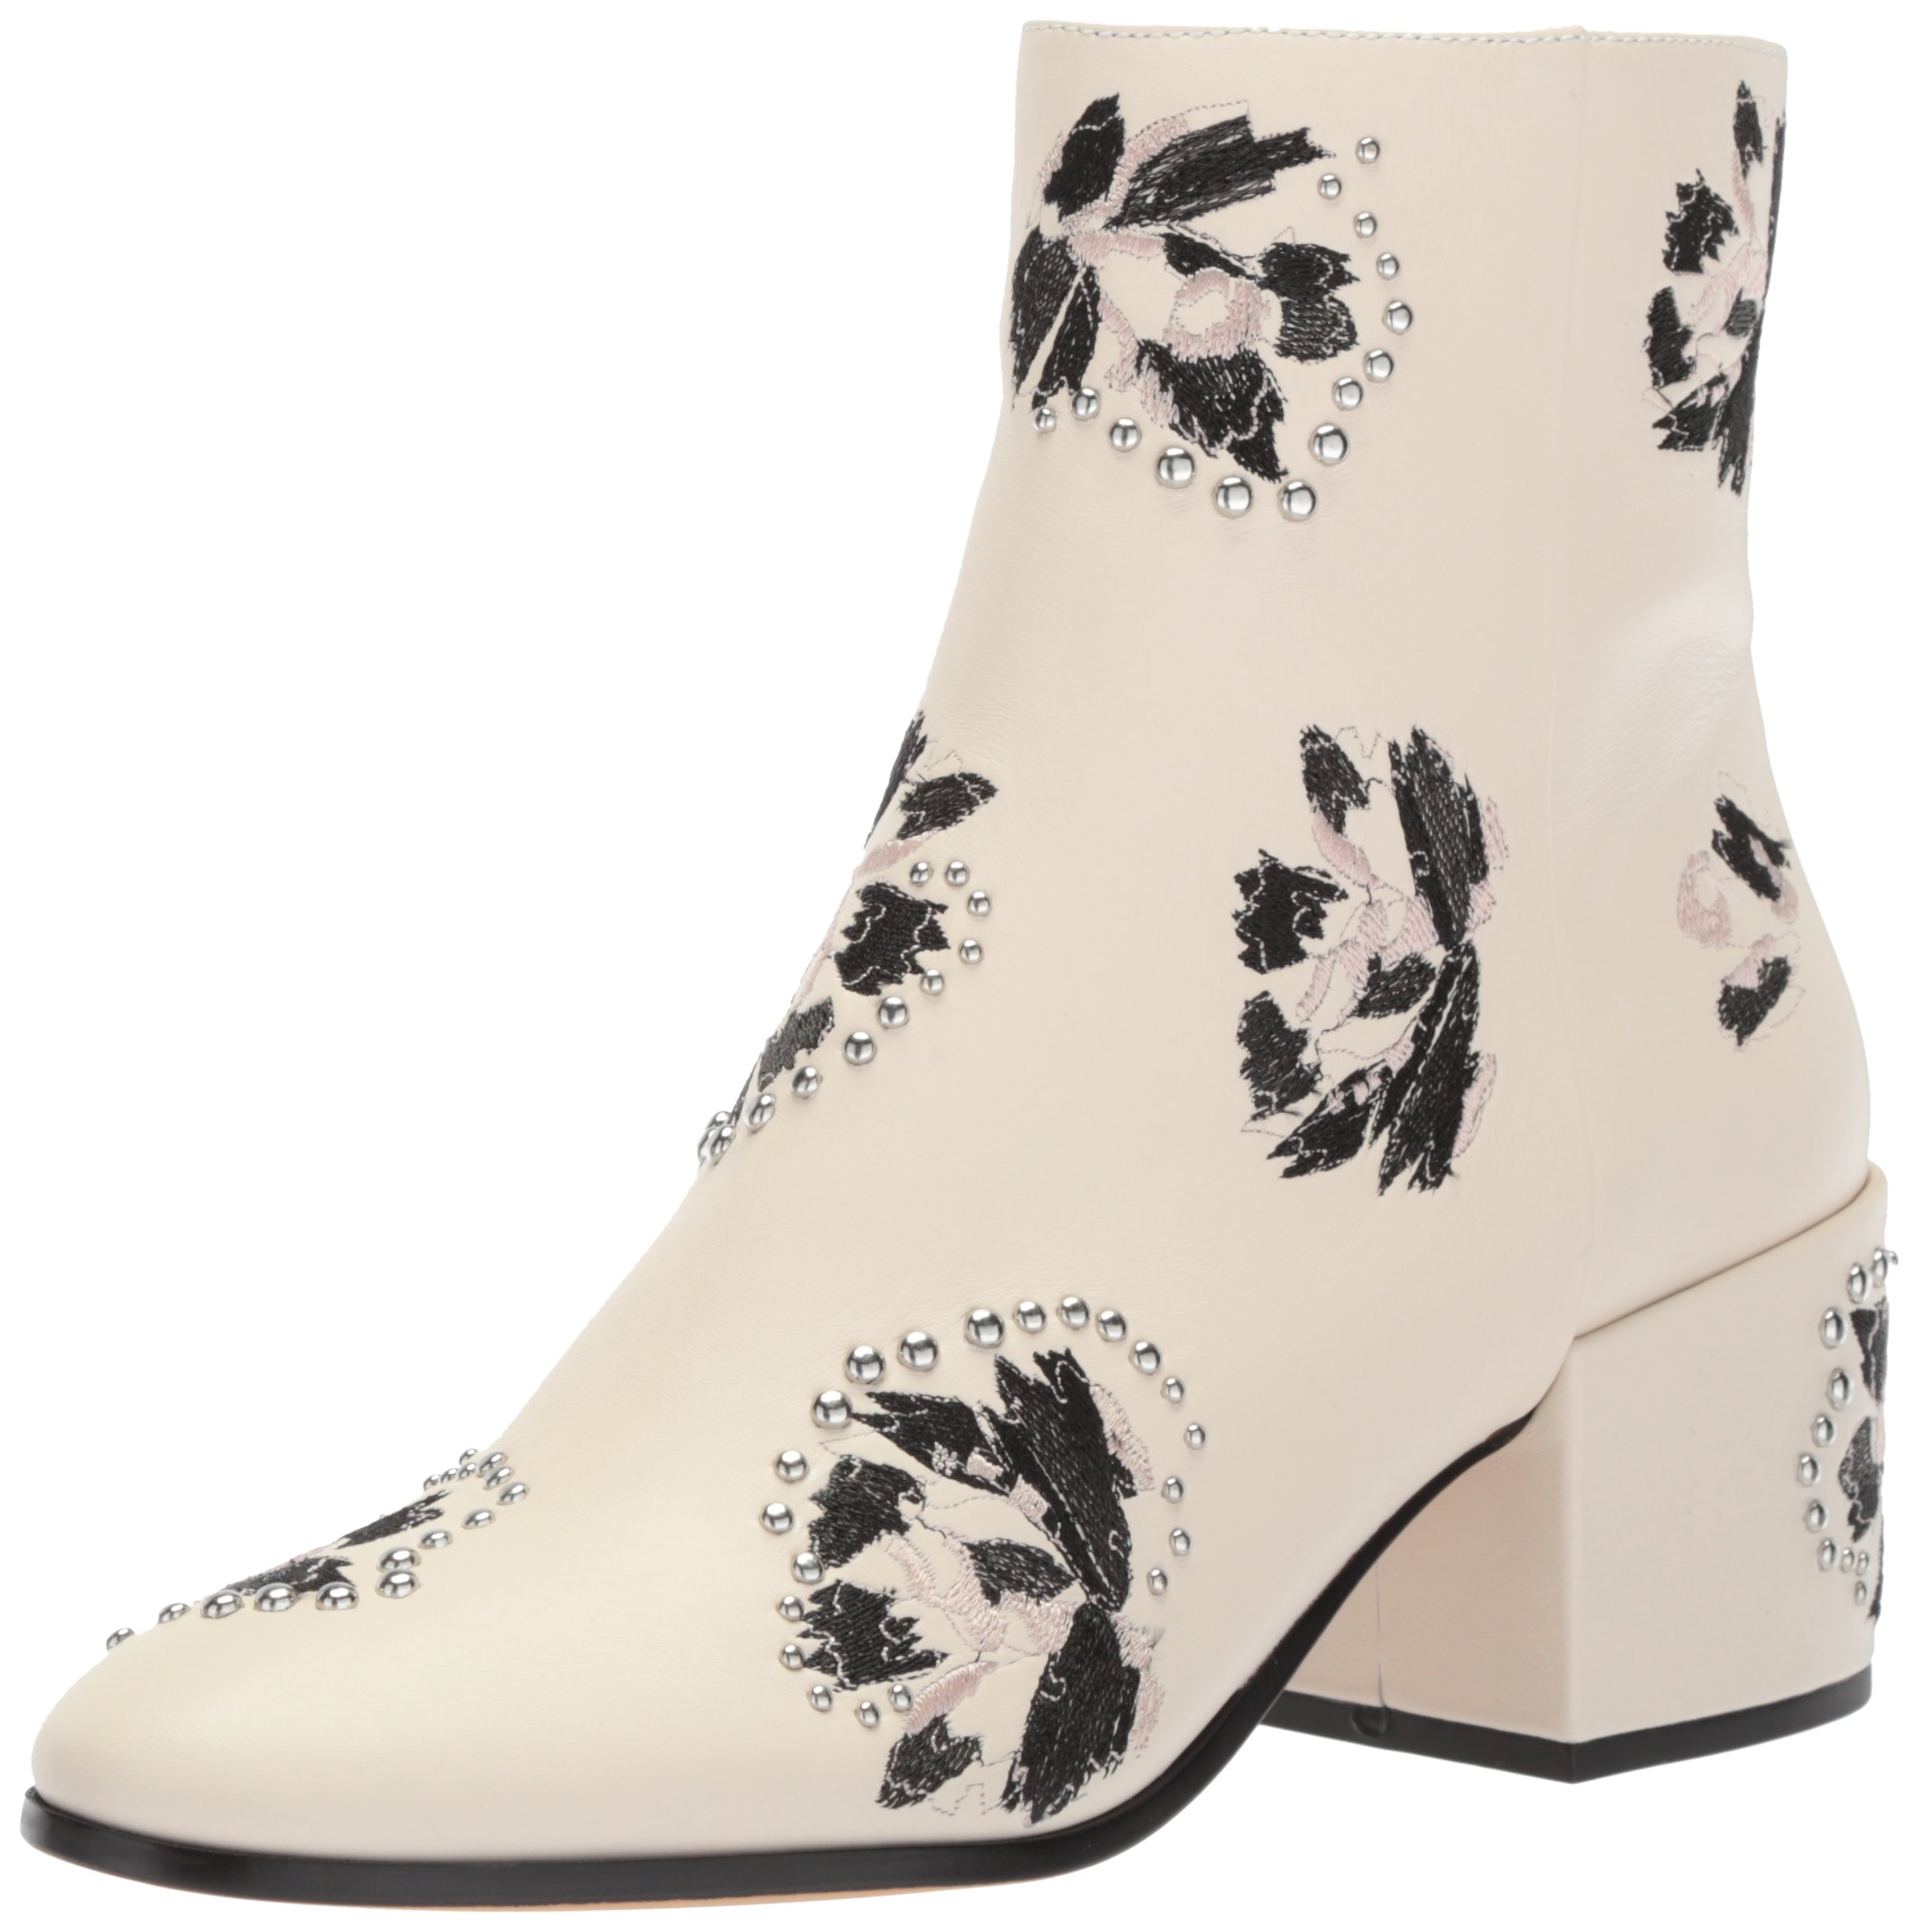 Dolce Vita Women's Mollie Ankle Boot, Ivory, 6.5 M US